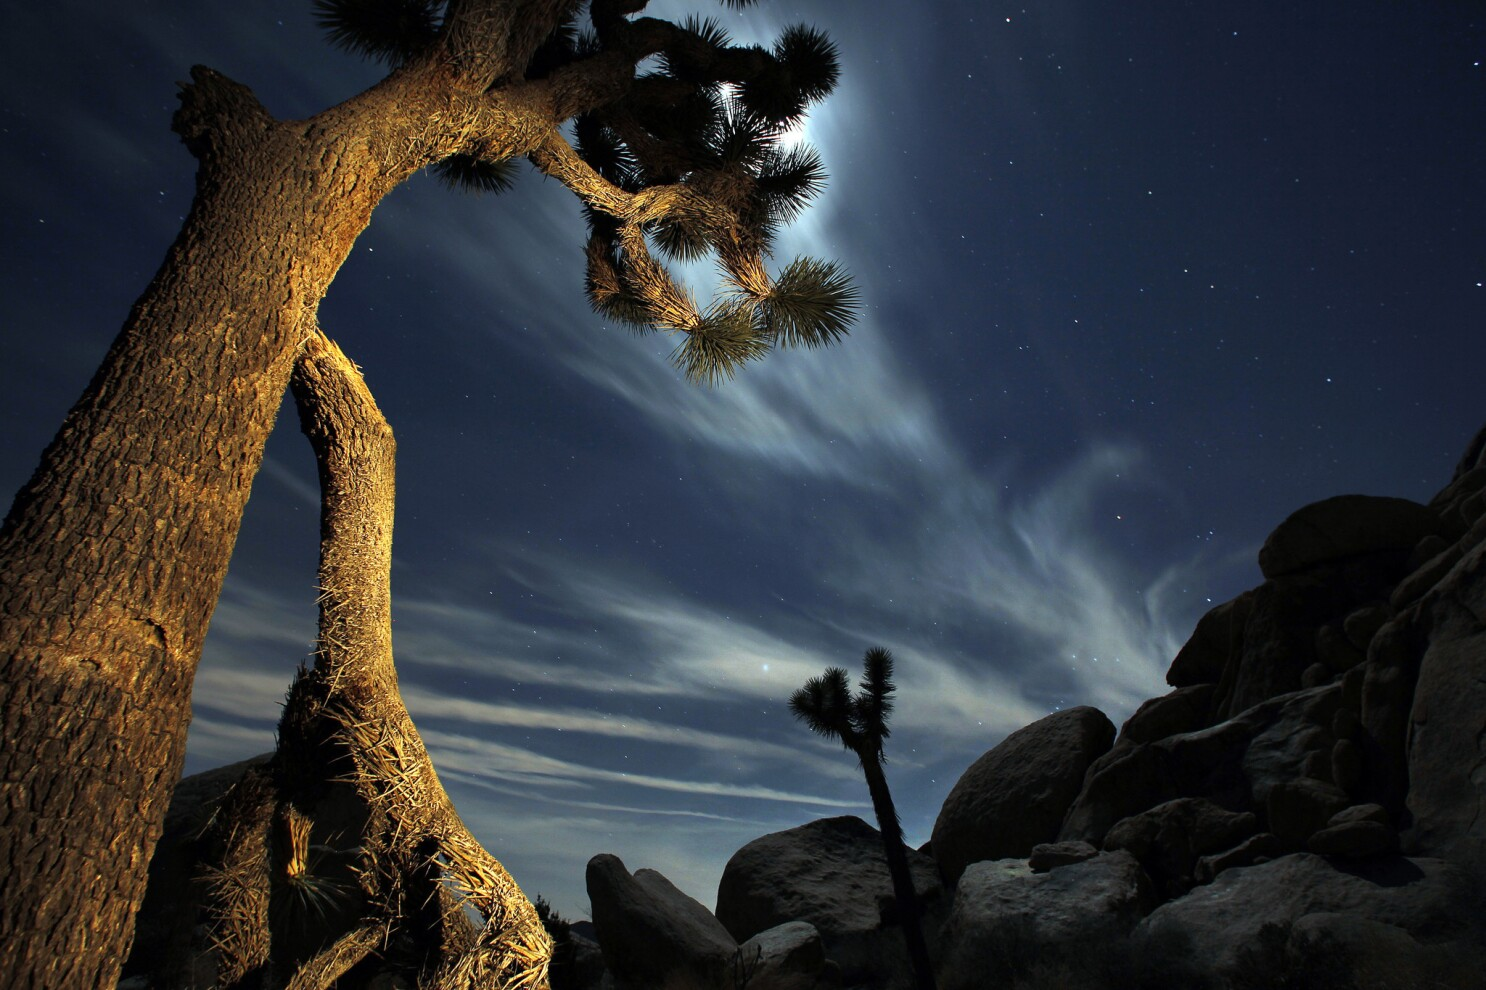 Newsletter: For the Joshua trees of Joshua Tree National Park, time may be running out